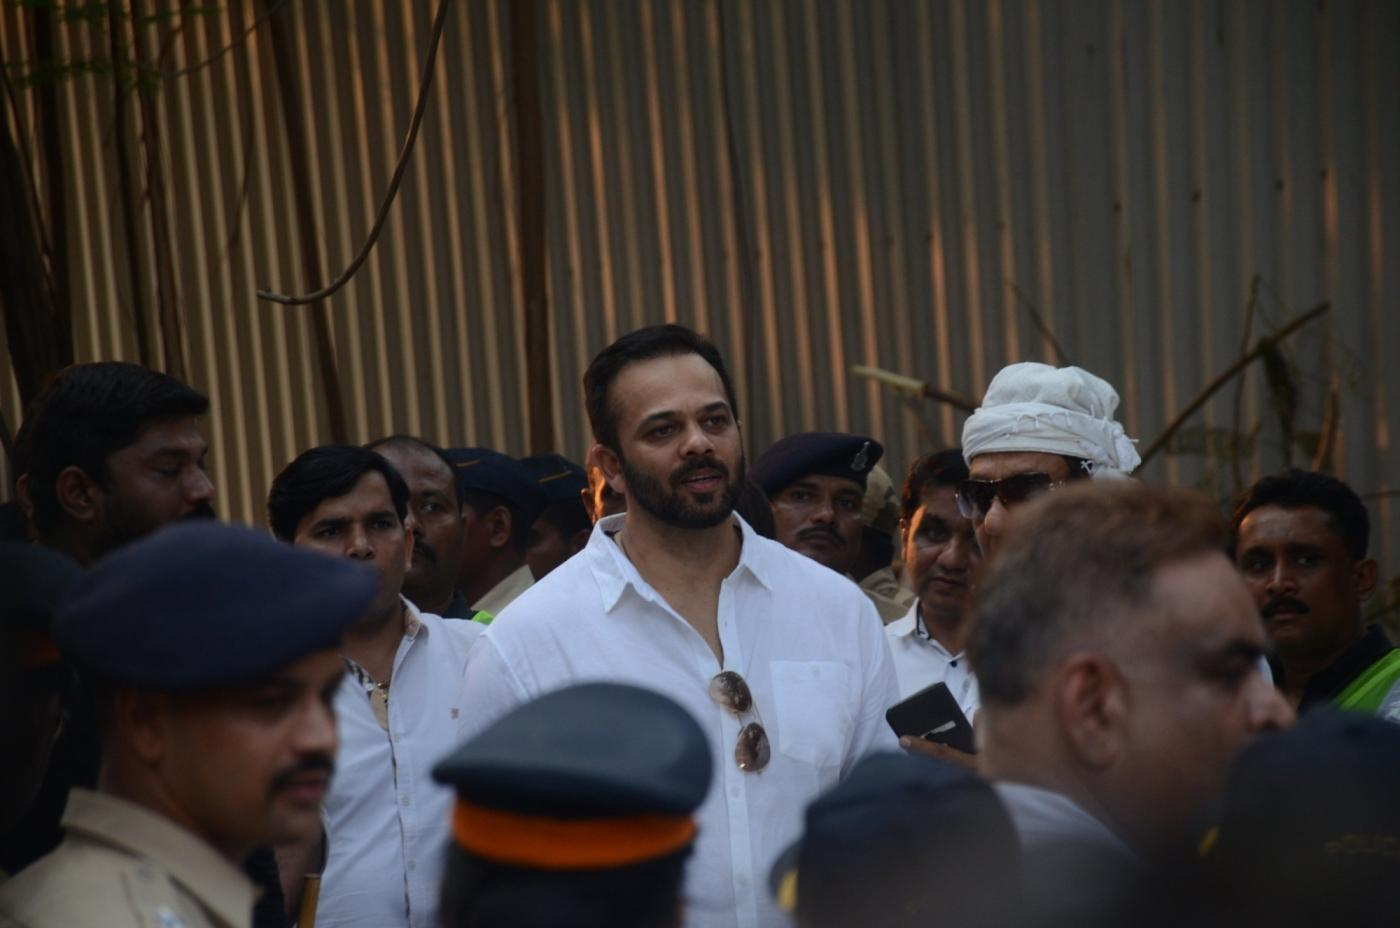 Mumbai: Director Rohit Shetty at the funeral of late actress Sridevi in Mumbai on Feb 28, 2018. Veteran actress Sridevi passed away following accidental drowning in a bathtub in her hotel room in Dubai on Saturday night. She was 54. The actress was in Dubai to attend the marriage function of actress Sonam Kapoor's cousin Mohit Marwah, along with husband Boney Kapoor and younger daughter Khushi Kapoor. (Photo: IANS) by .